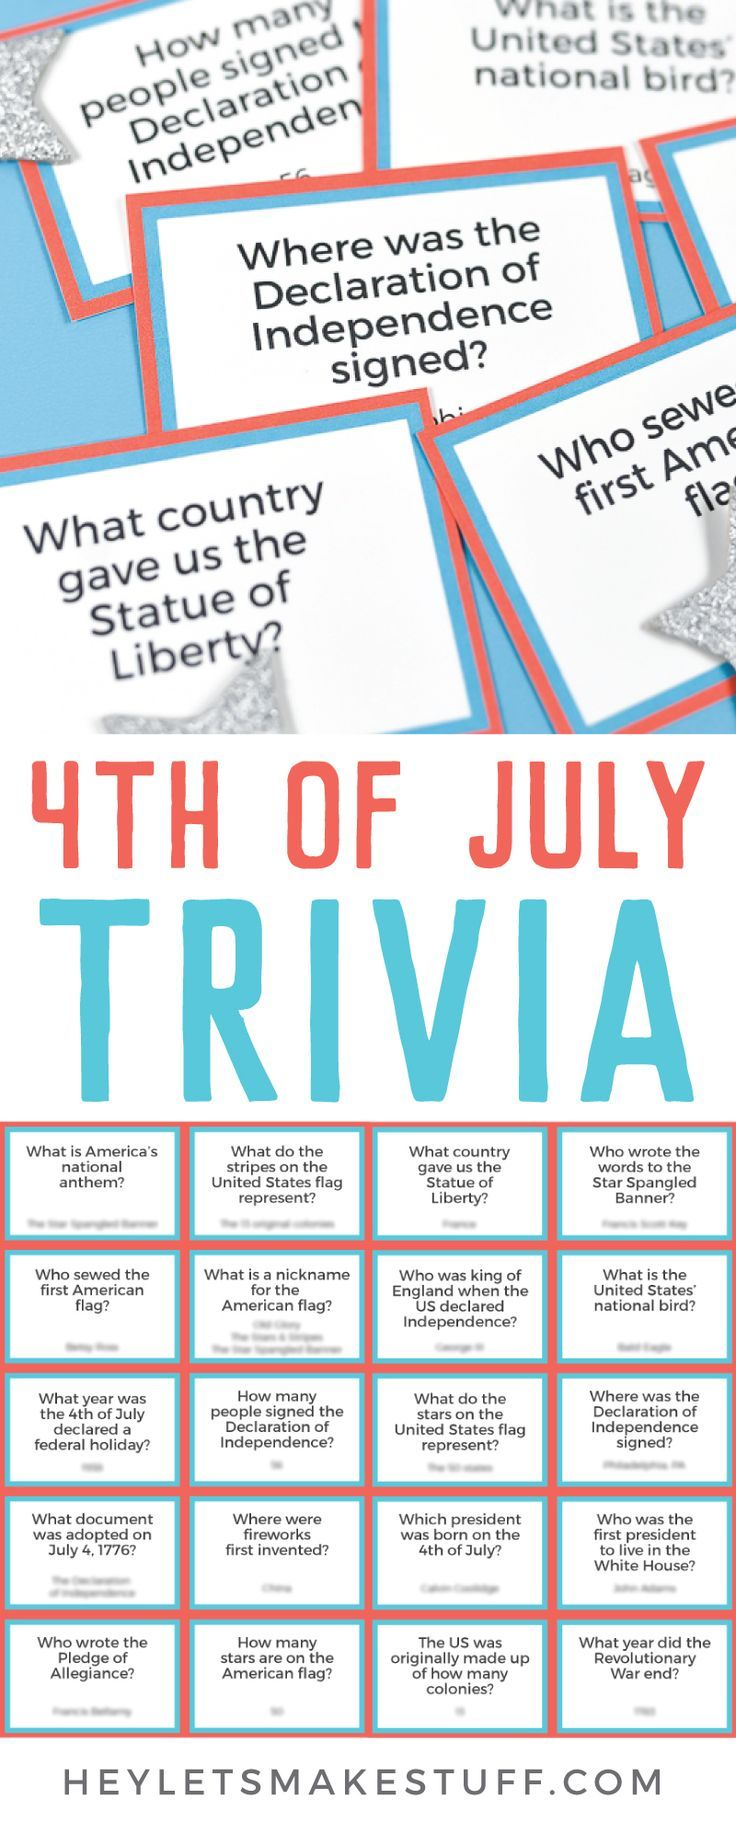 photograph about 4th of July Trivia Printable named Printable Fourth of July Trivia Fourth of July 4th of